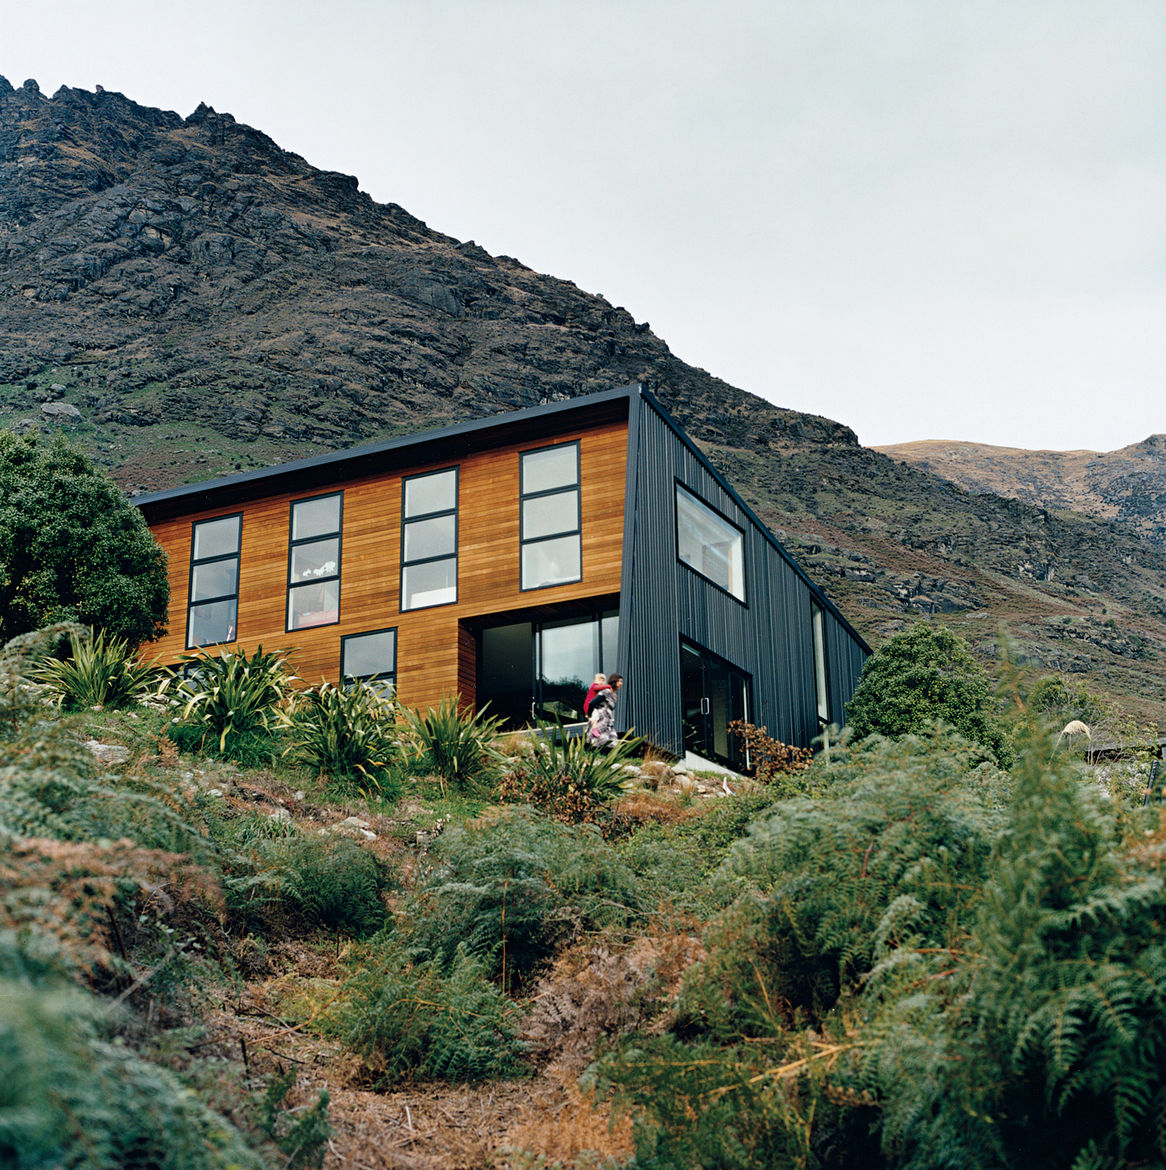 The location on the shores of a small bay means it is sheltered from cold southerly winds. The alpine location provided plenty of inspiration for landscaping, which Ritchie and Kerr elected to keep as minimal as possible, as if the home had landed on its